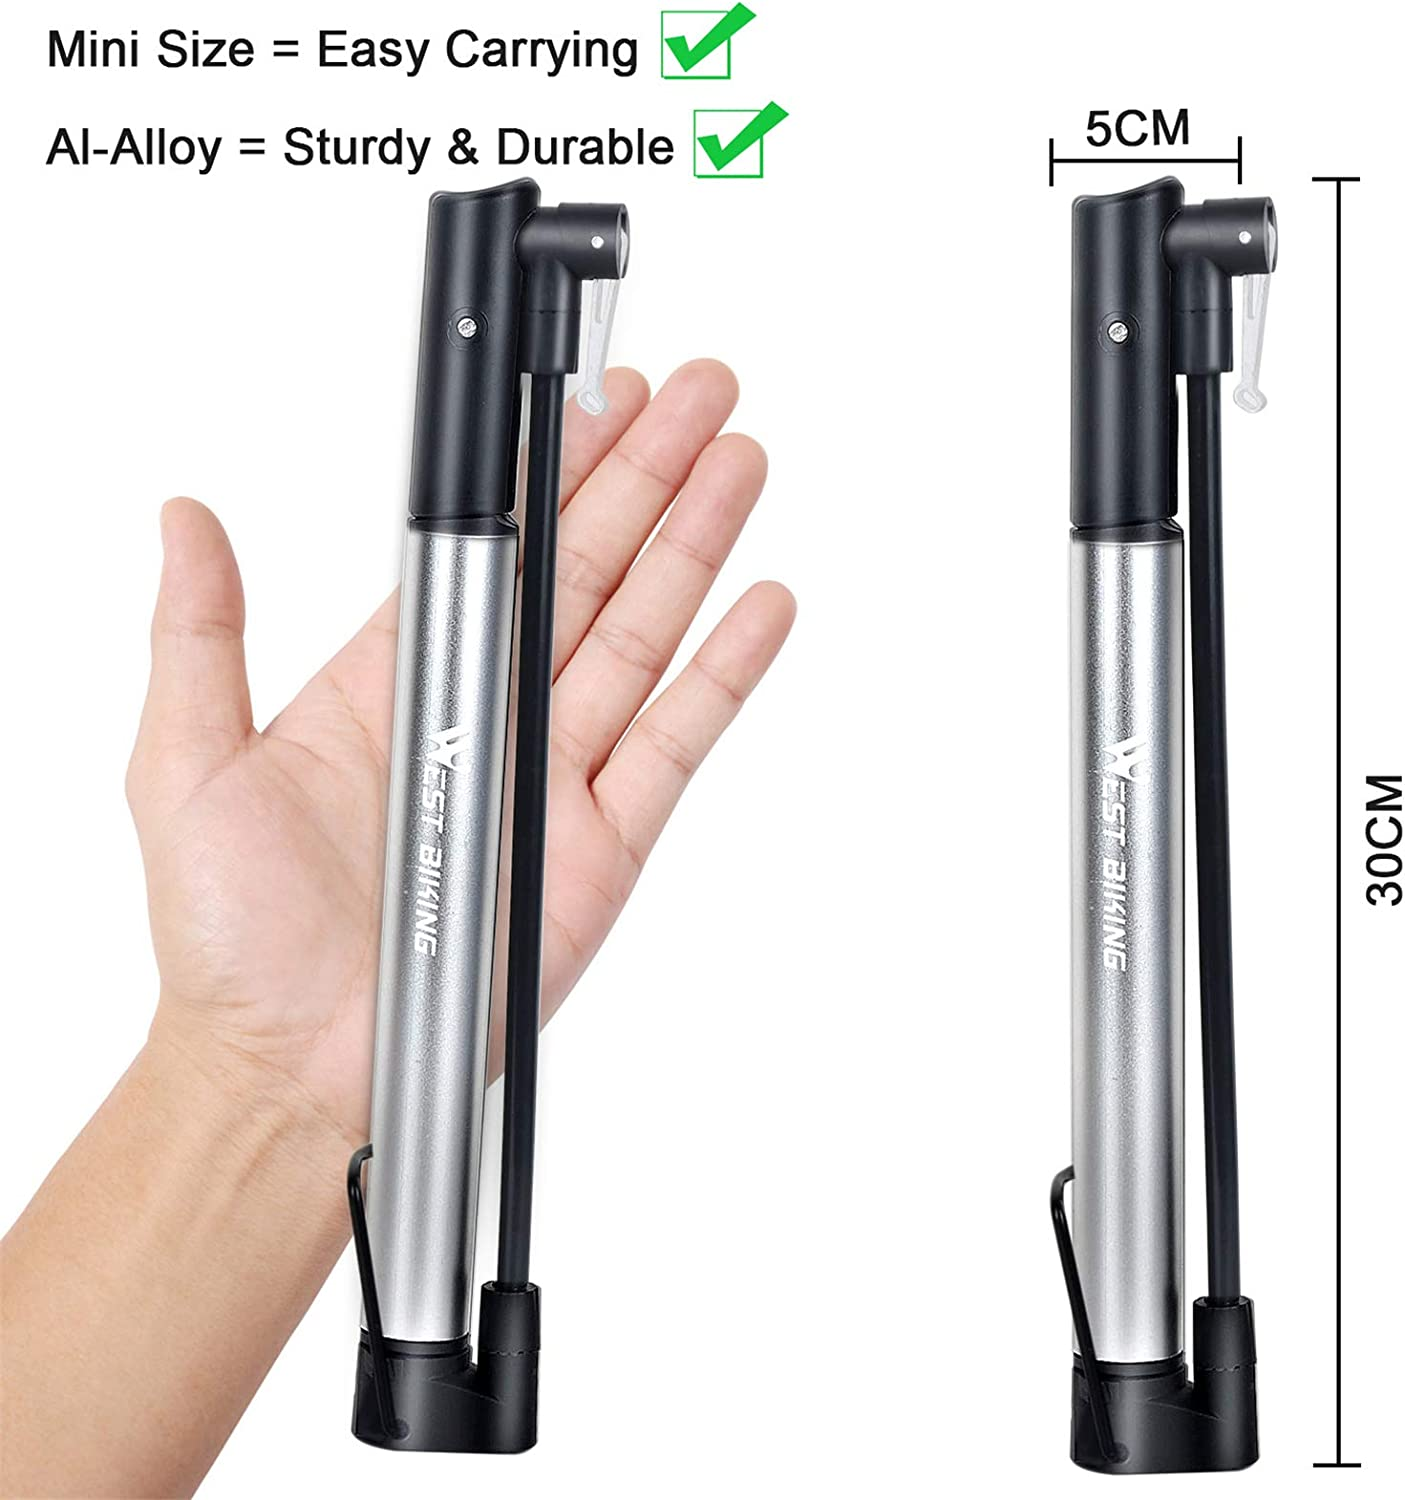 Bike Pump,Aluminum Alloy Portable Mini Bicycle Tire Pump,Super Fast Tyre Inflation Compatible with Universal Presta and Schrader Valve Frame Mounted Air Pump for Road Ball Pump Needle//Frame Mount